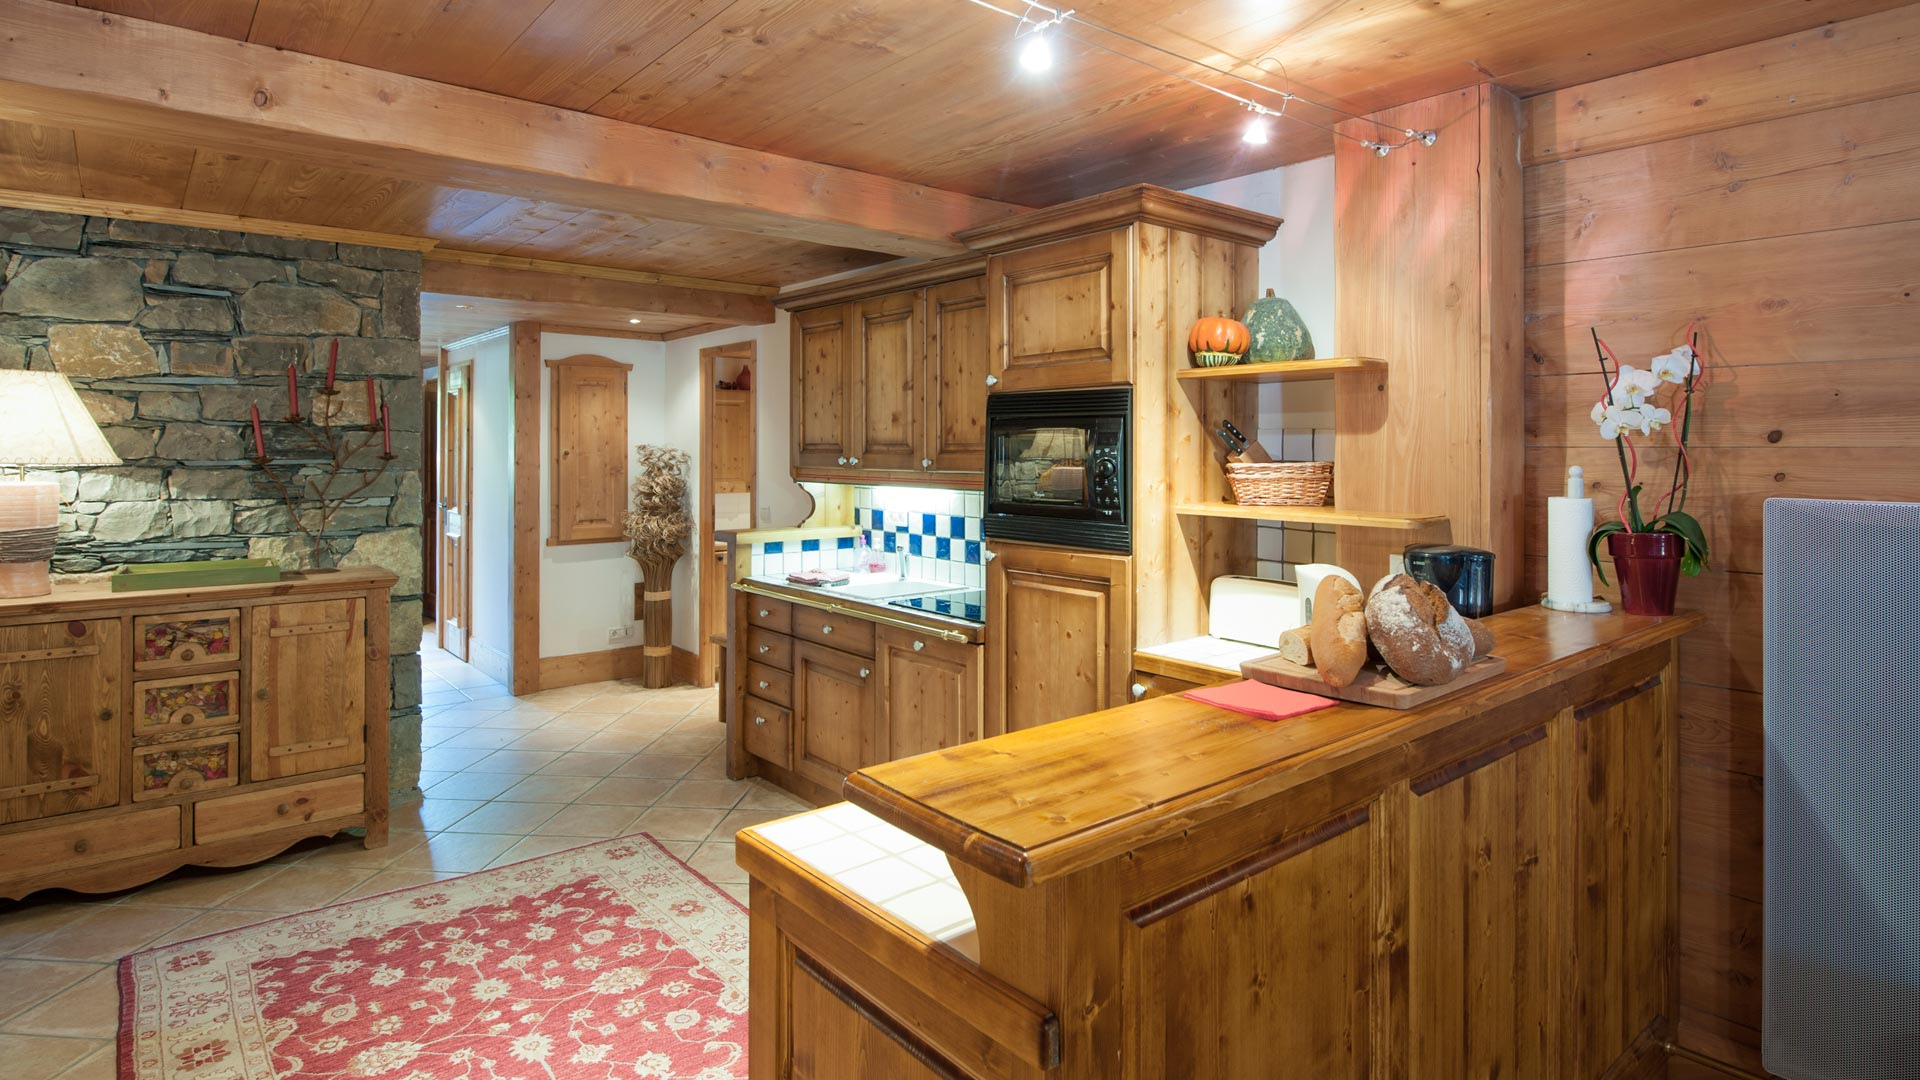 Kitchen in Sainte Foy Apt. in Ste Foy